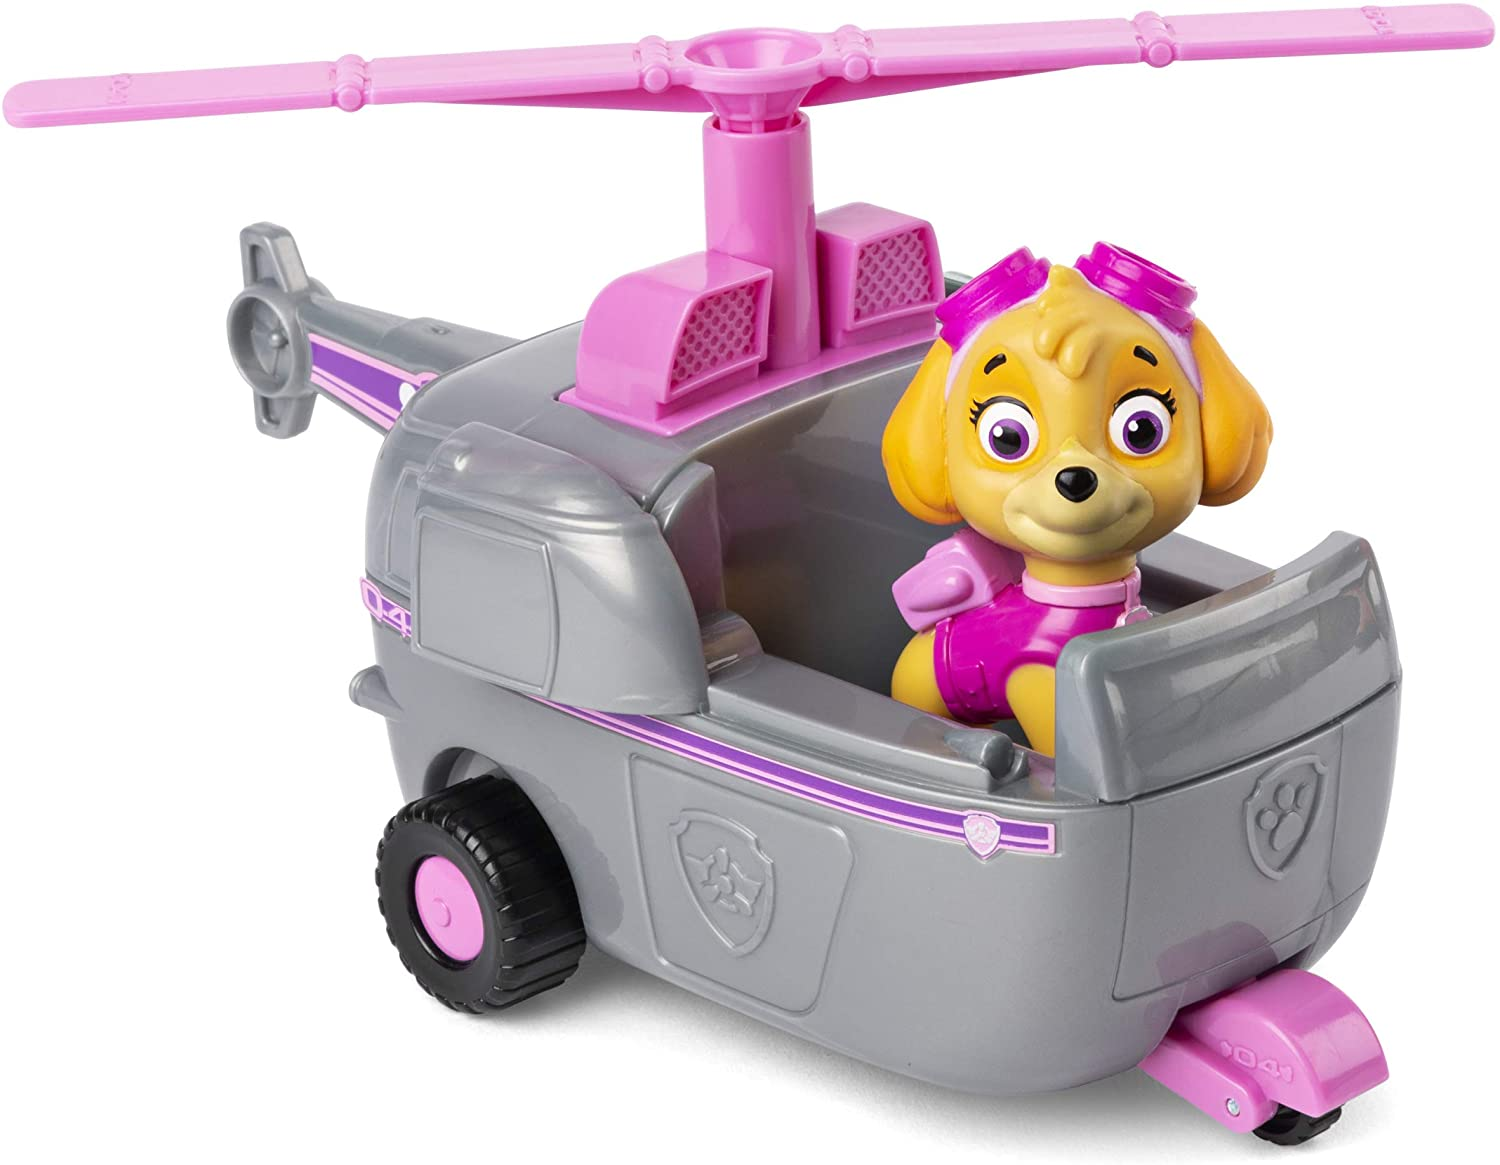 Stella Paw Patrol helicopter and figurine